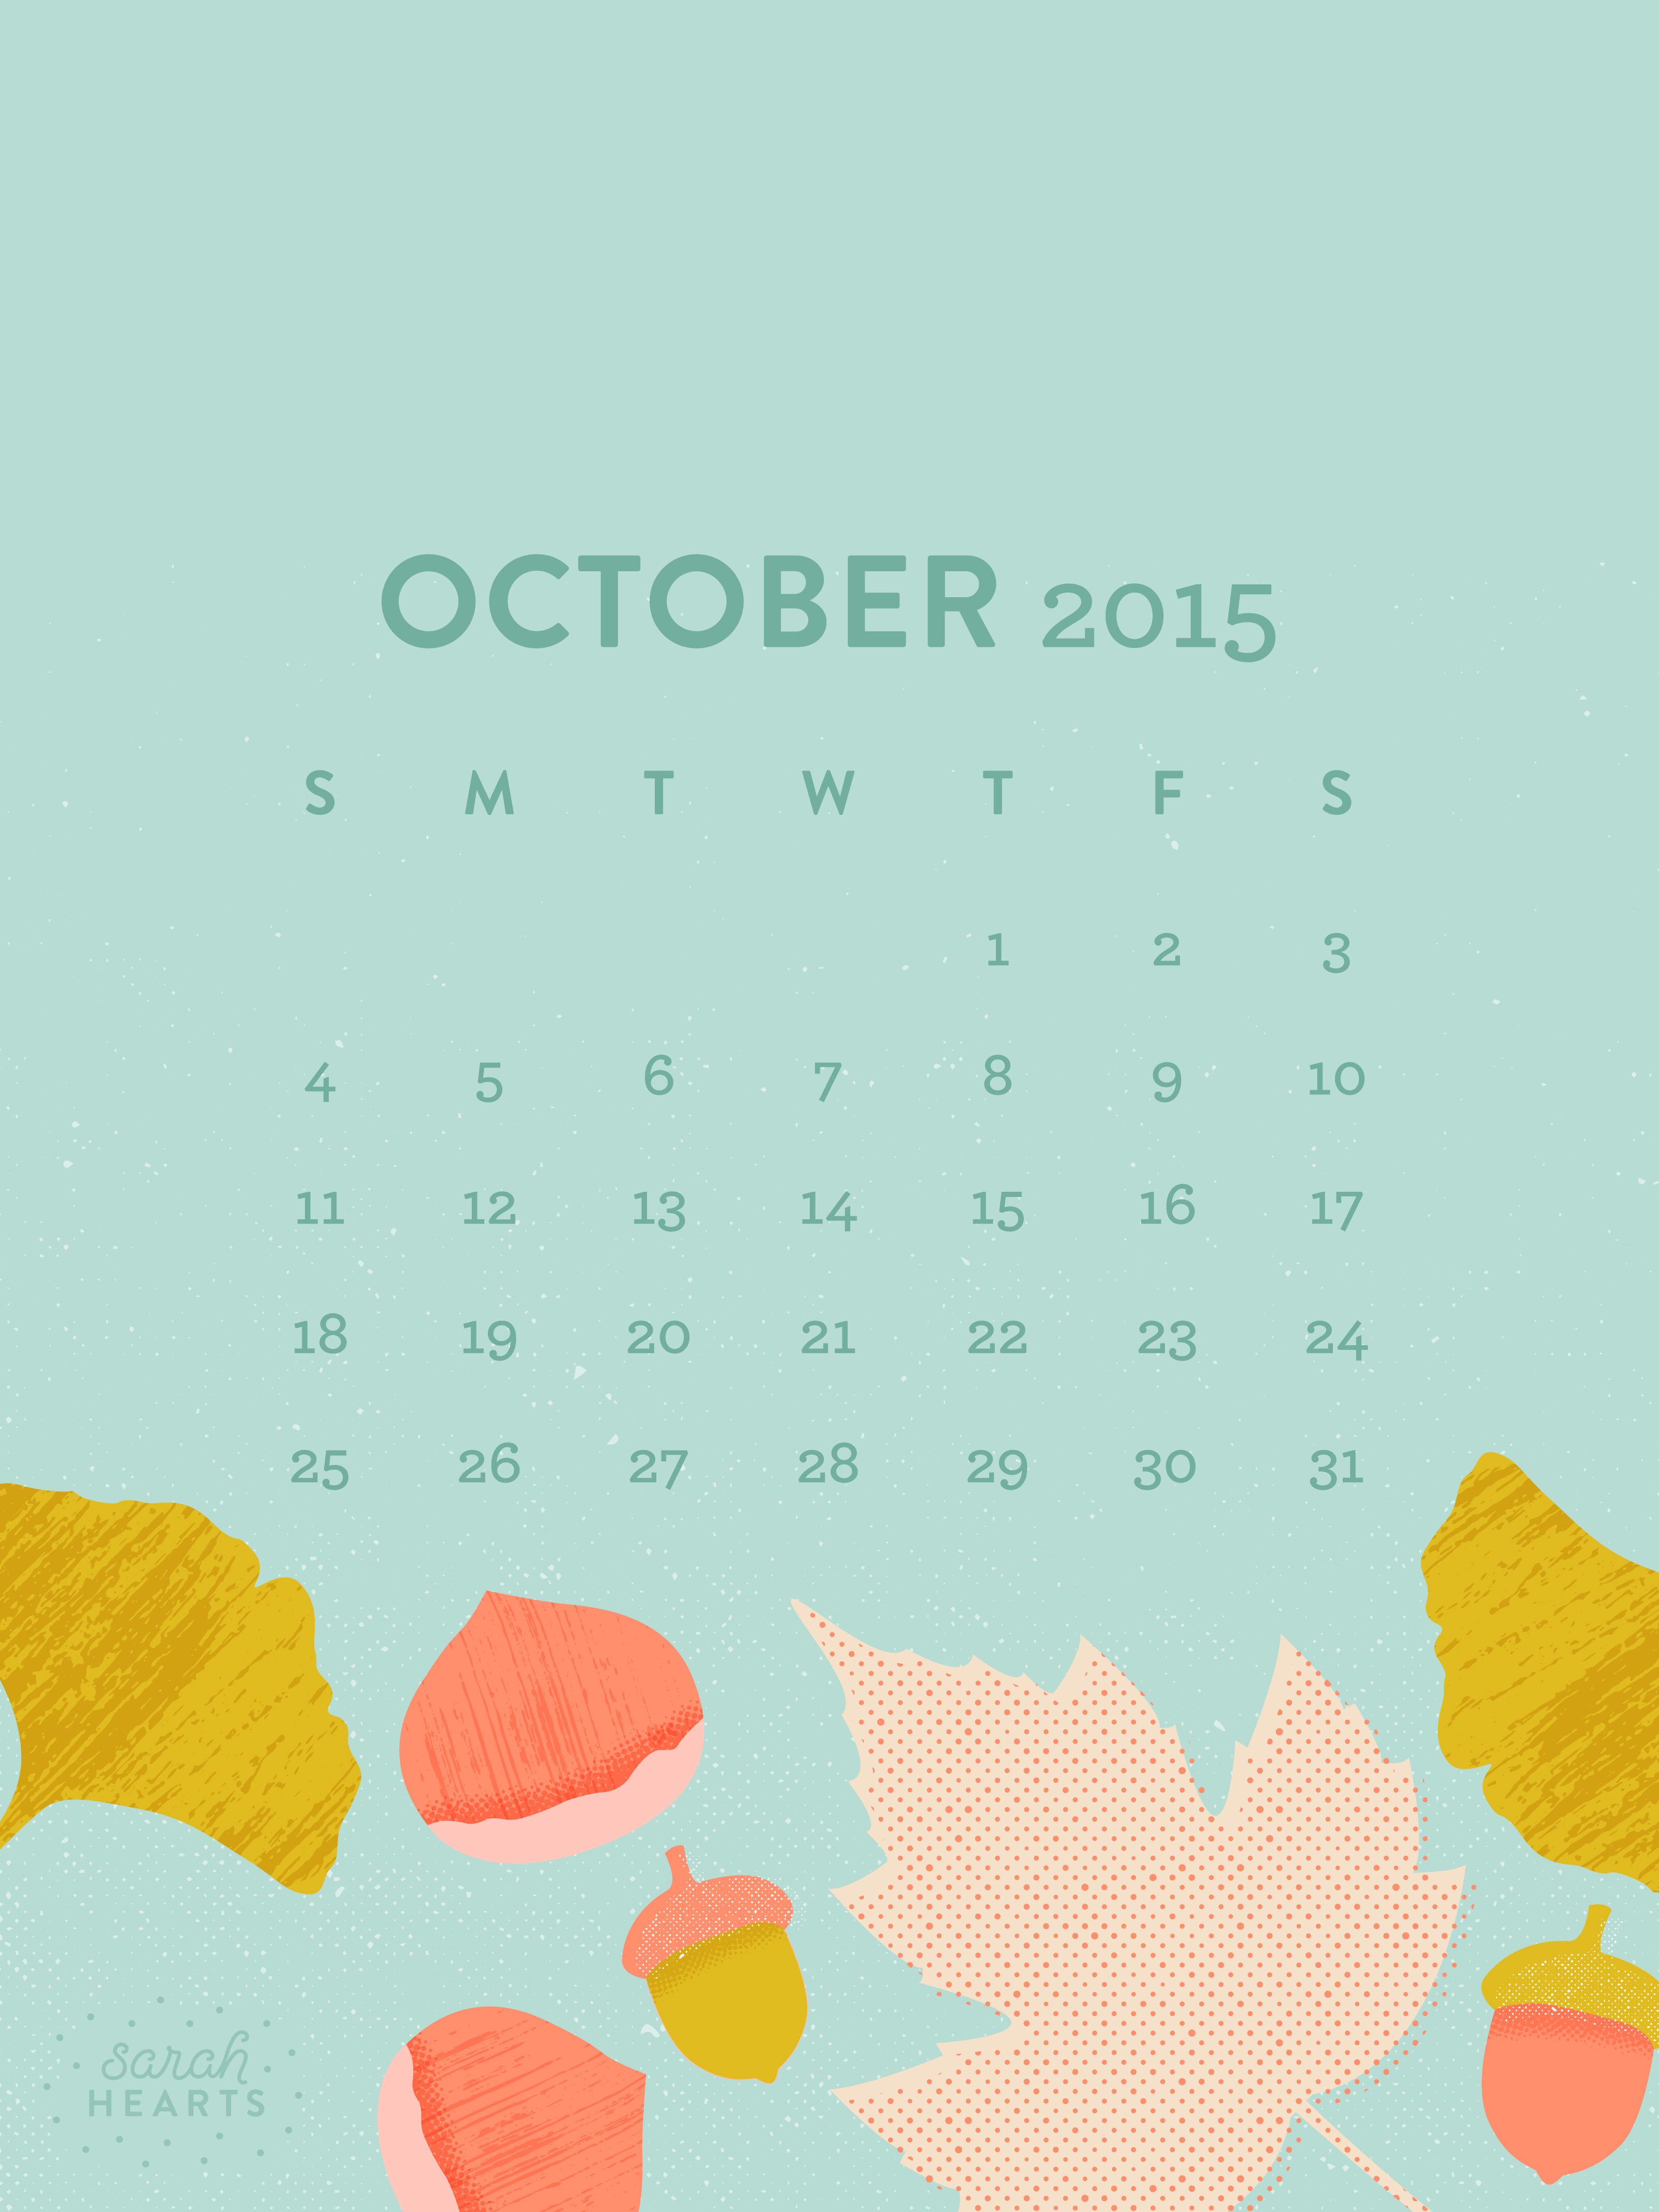 Fall Flowers Iphone Wallpaper October 2015 Calendar Wallpaper Sarah Hearts